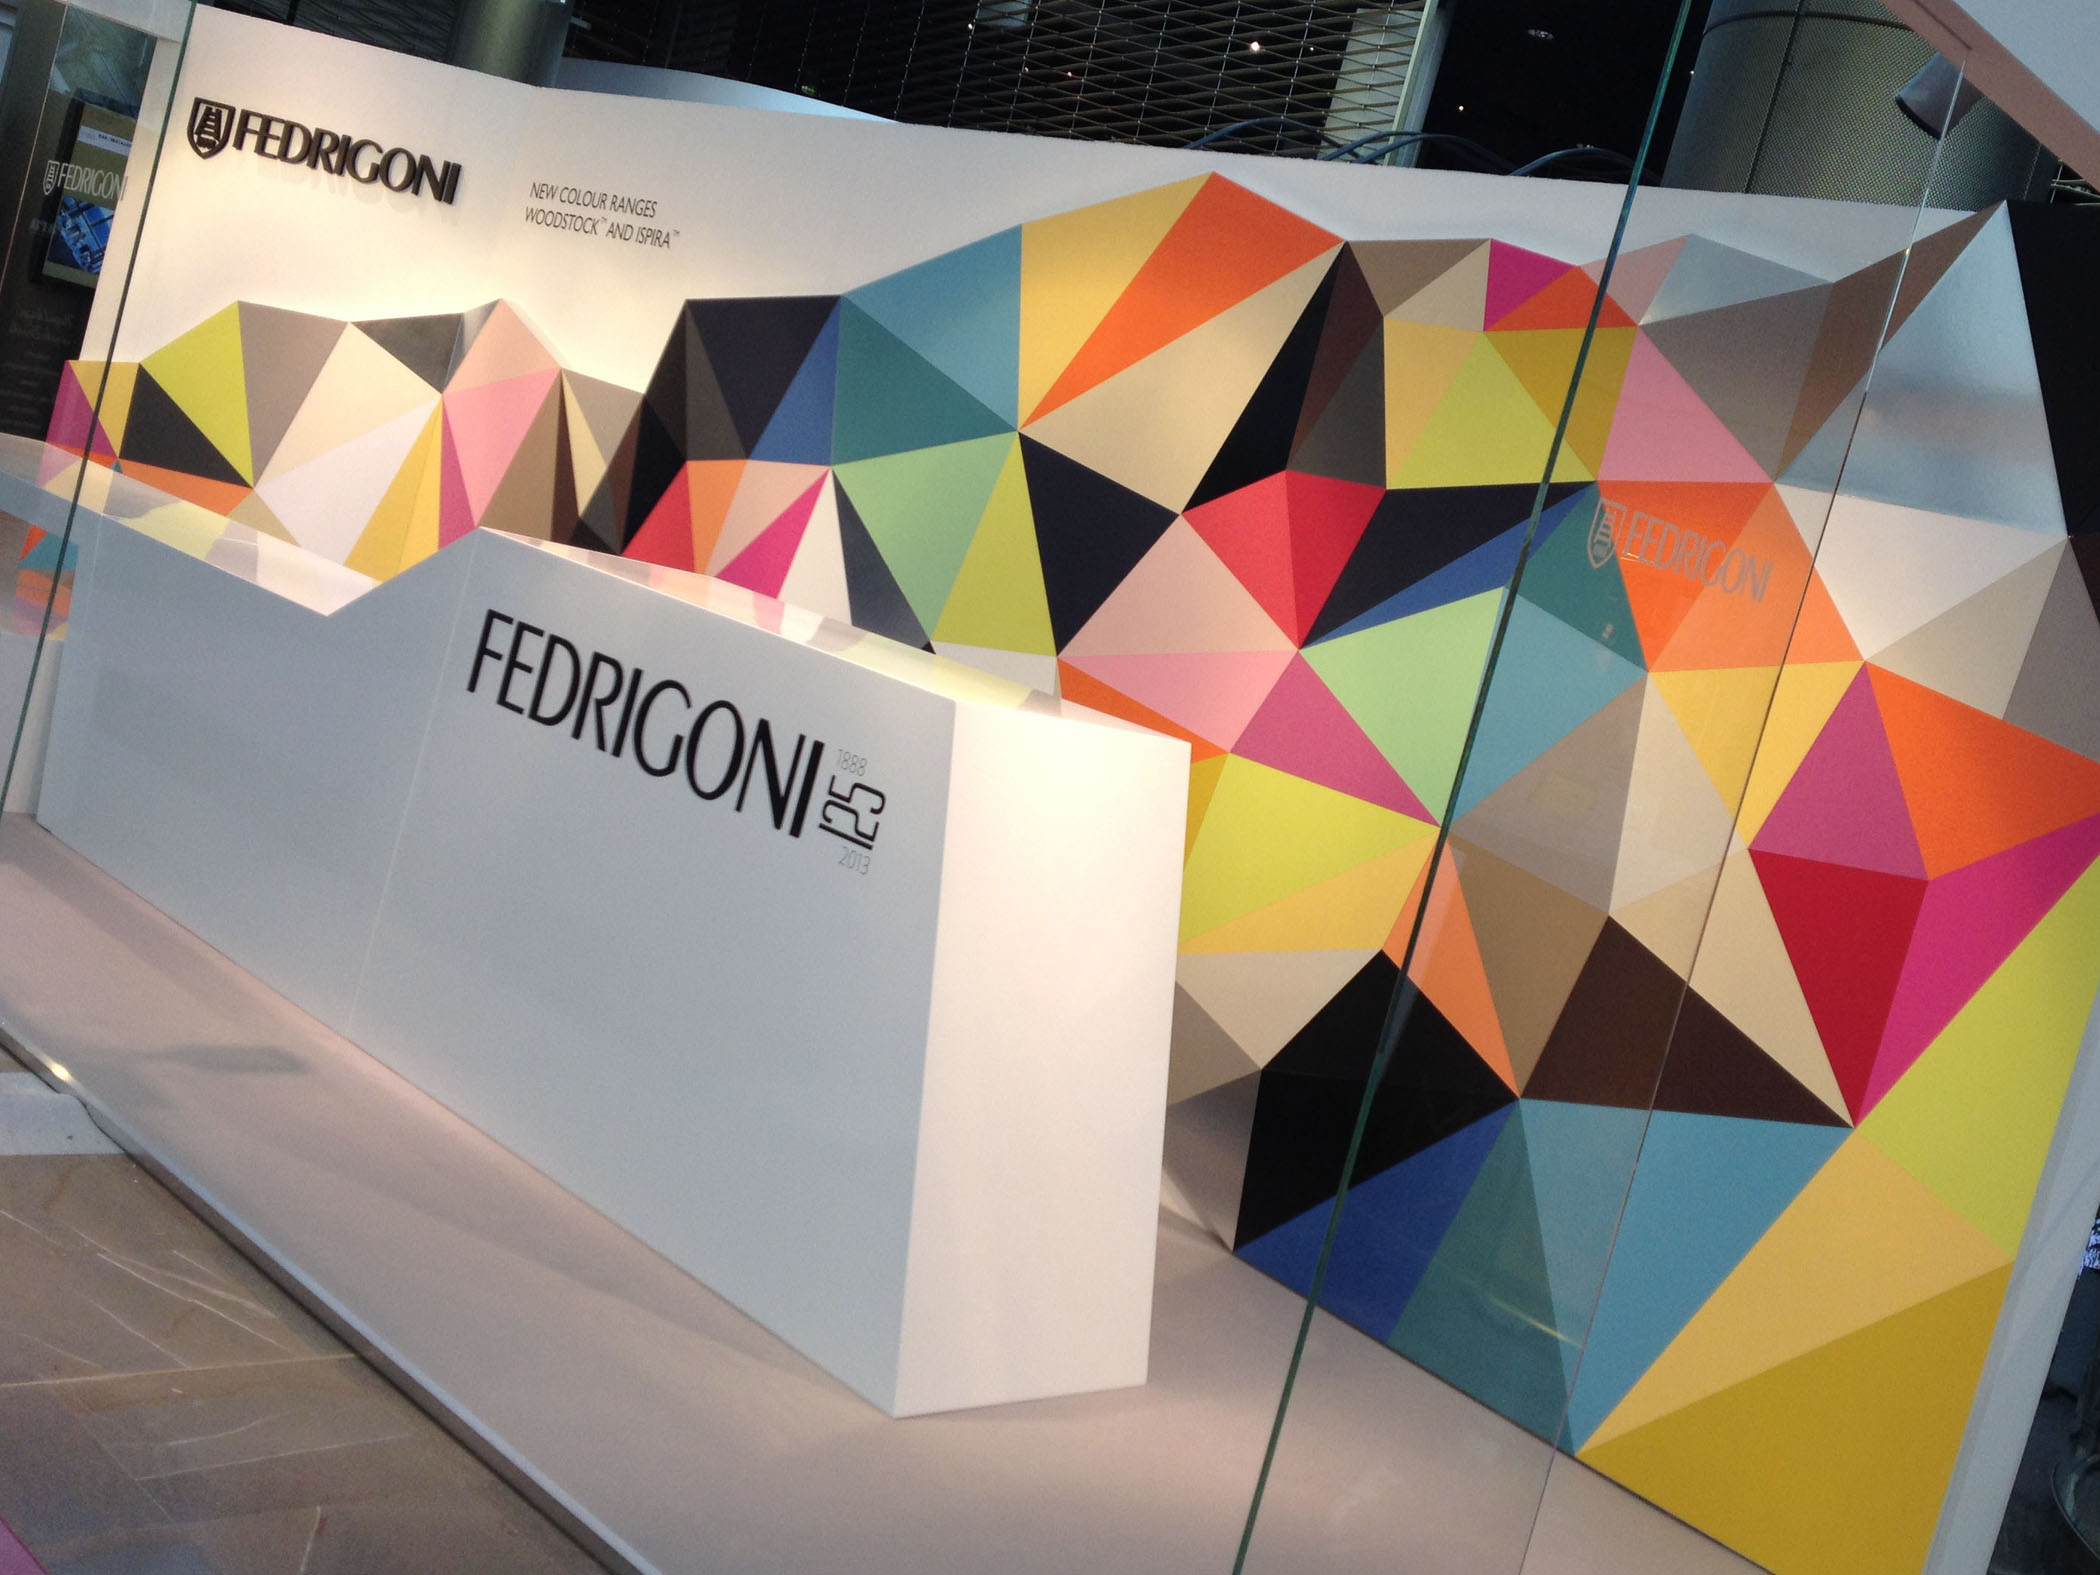 Fedrigoni Papers Woodstock Ispira collection stand LuxePack Montecarlo design project 02